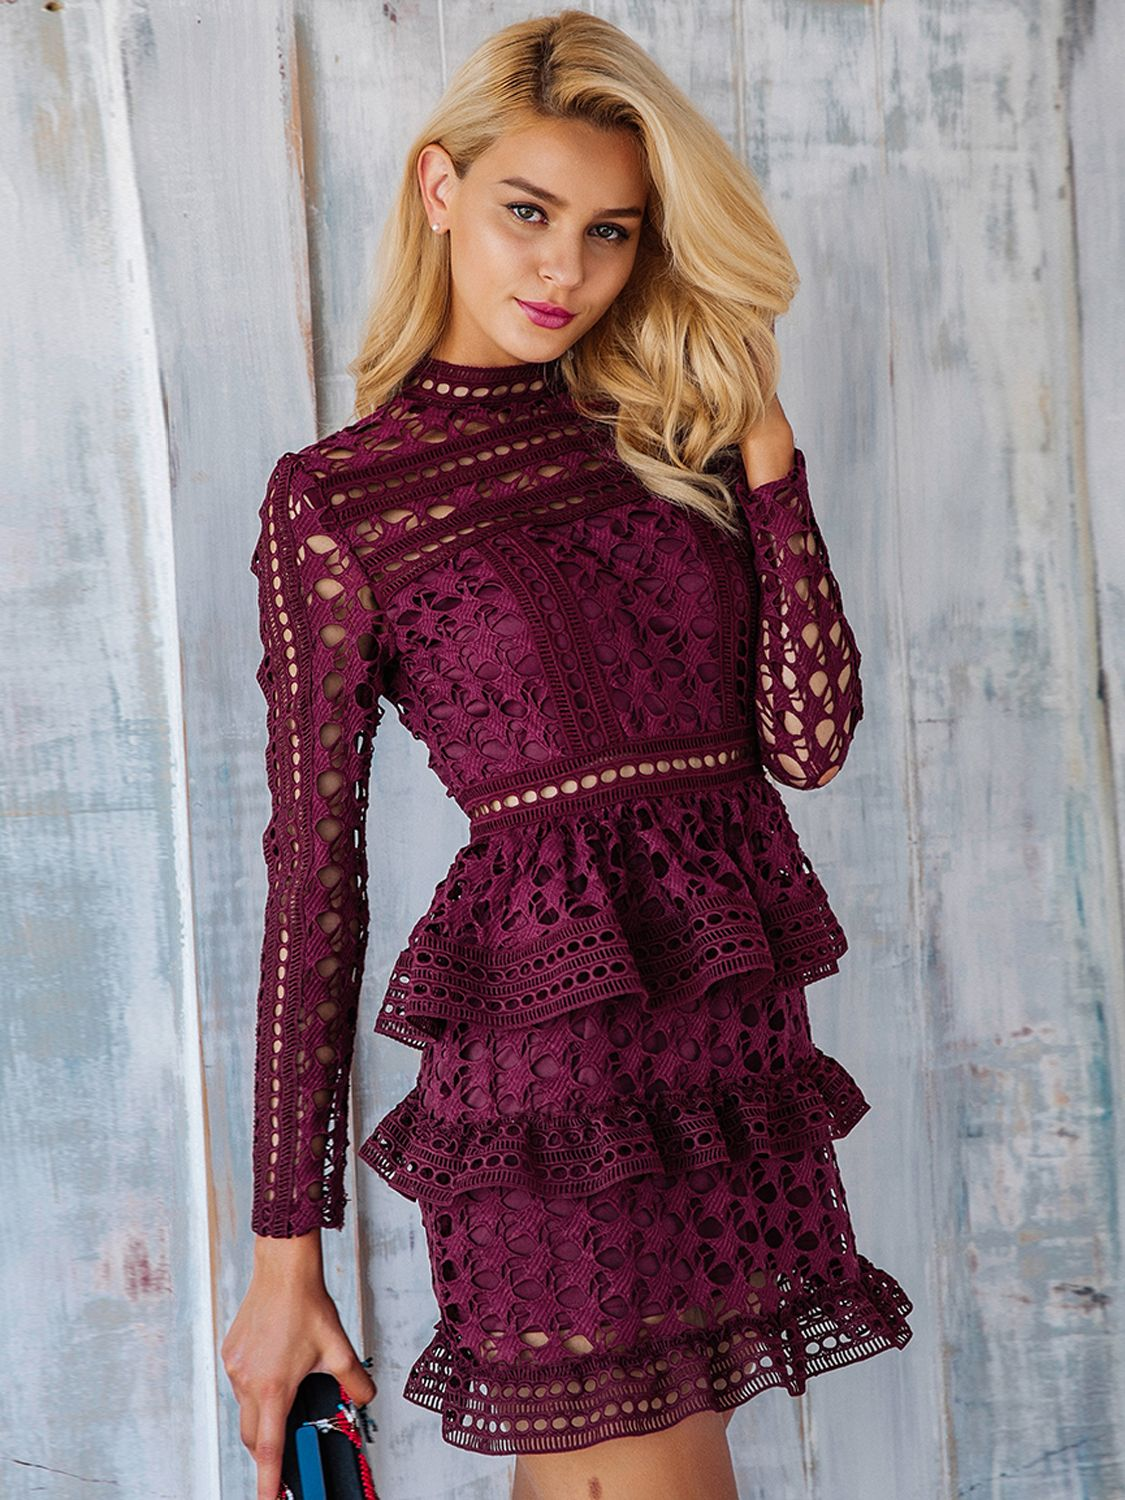 ccfa268ccc27 Burgundy High Neck Long Sleeve Layered Cut Out Lace Dress